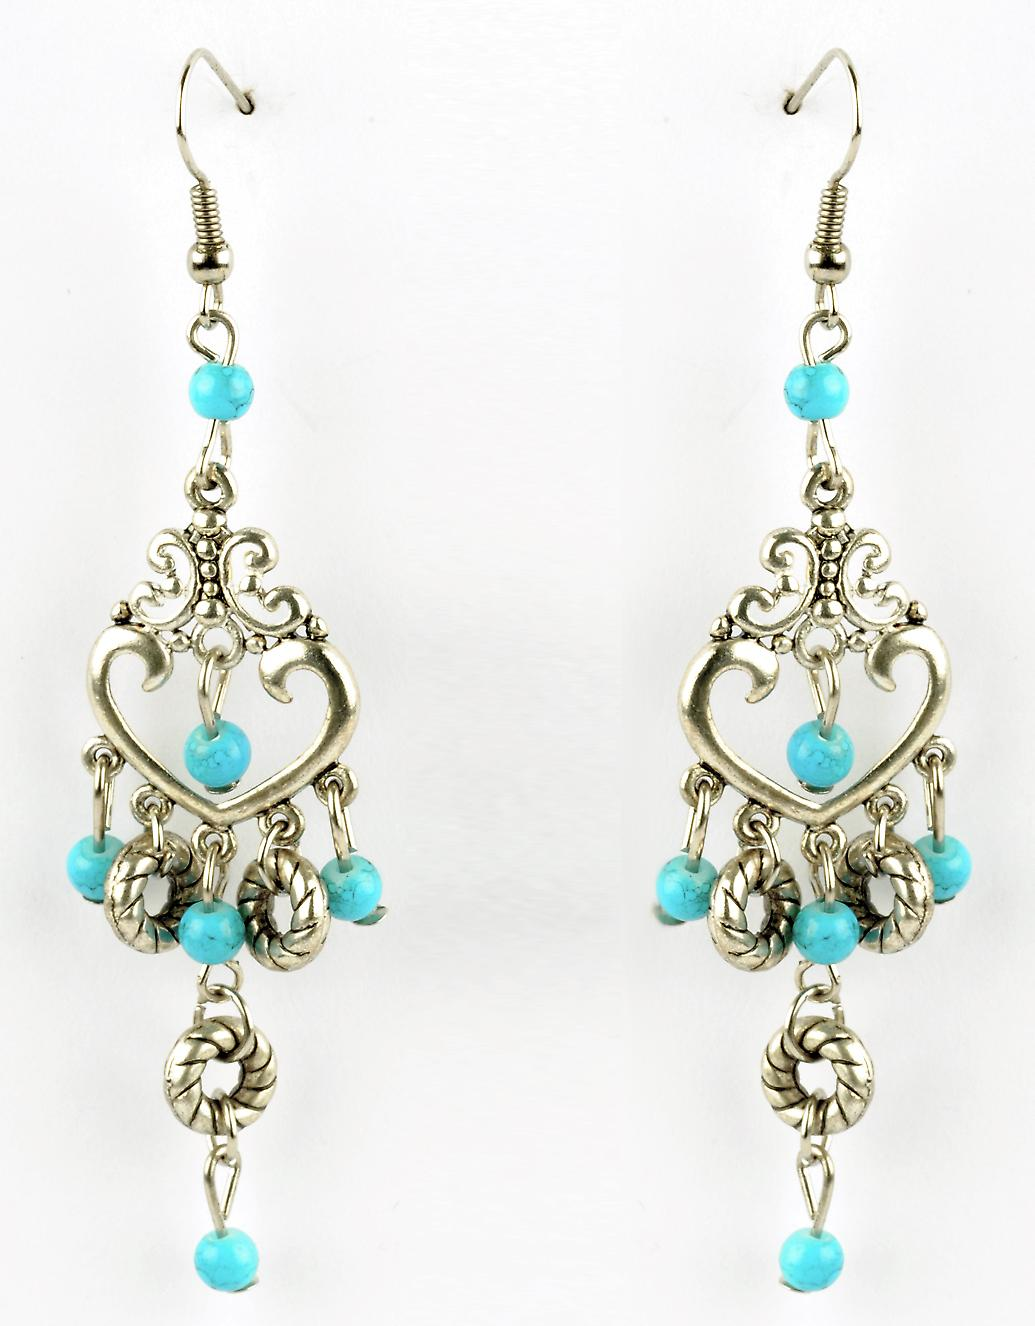 Waooh - Fashion Jewellery - WJ0780 - On Earrings Antique Silver